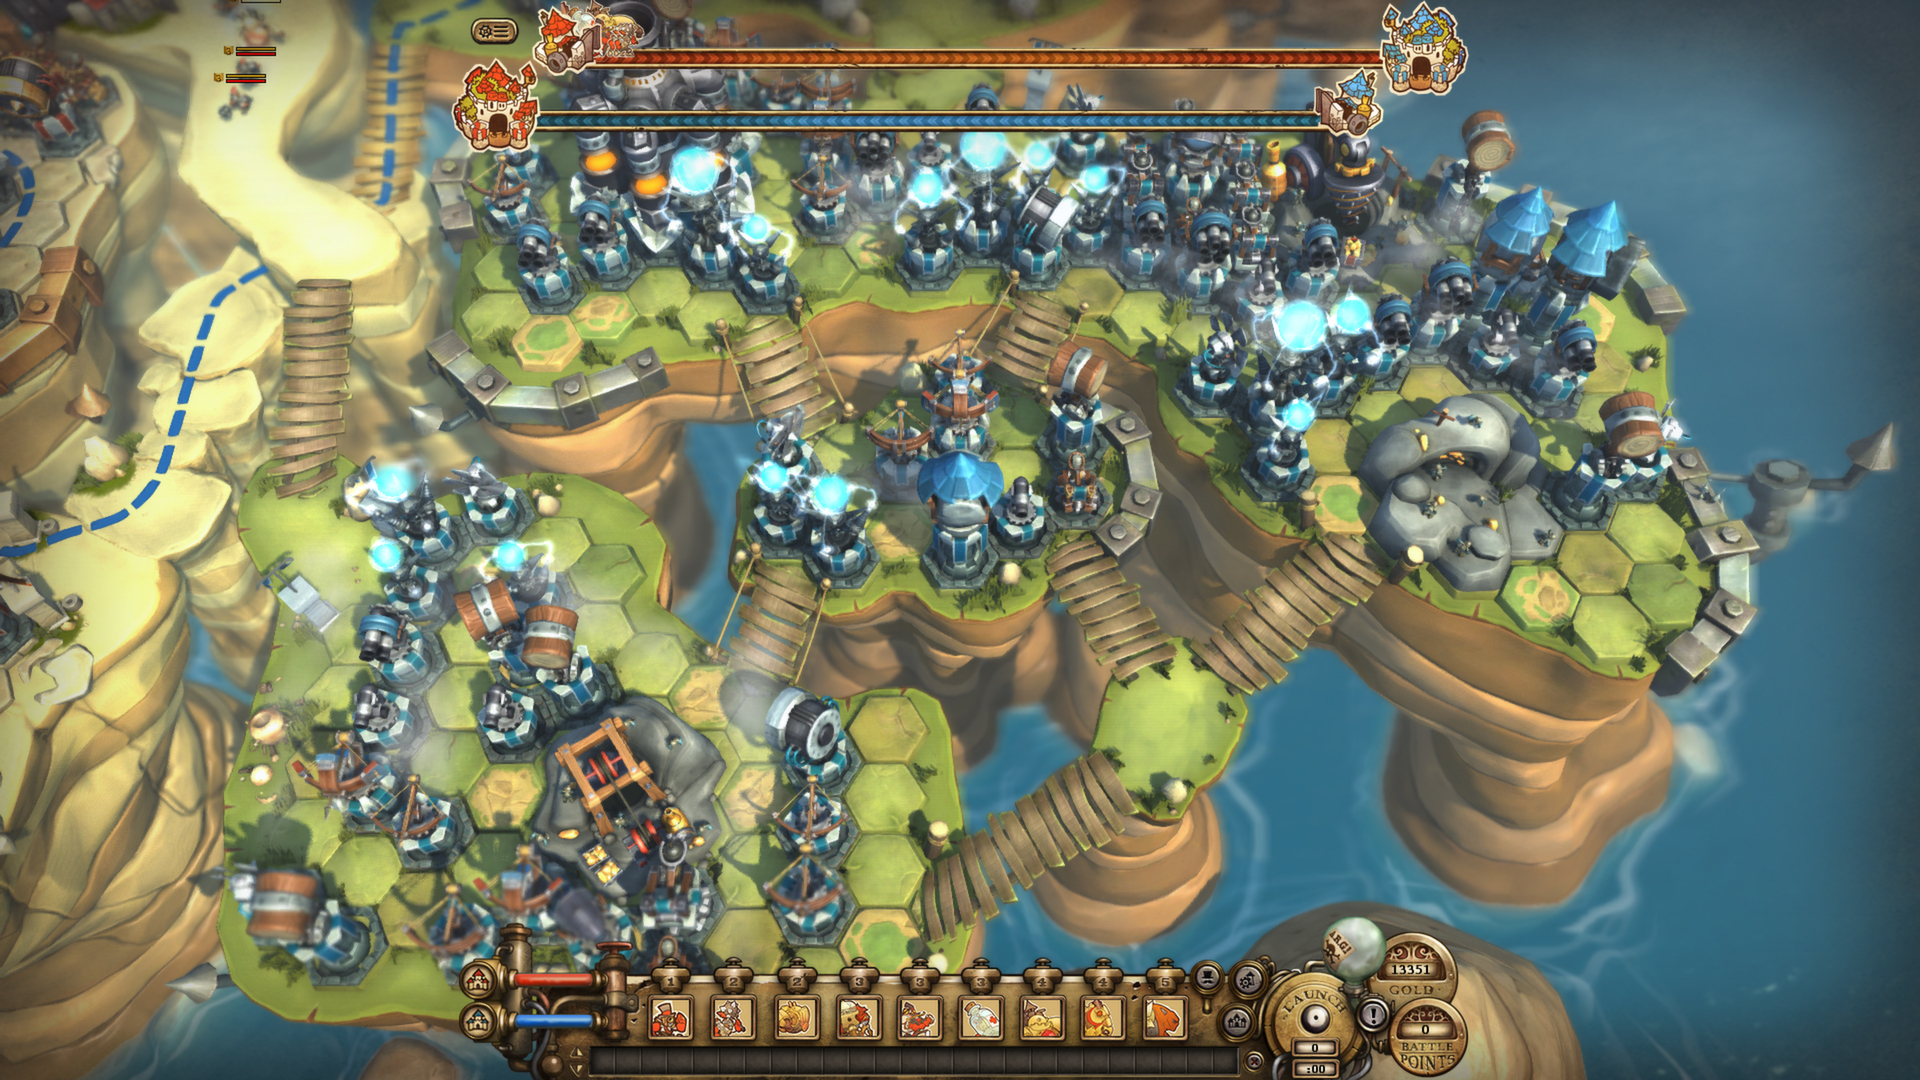 Top best tower defense games on android | technobezz.